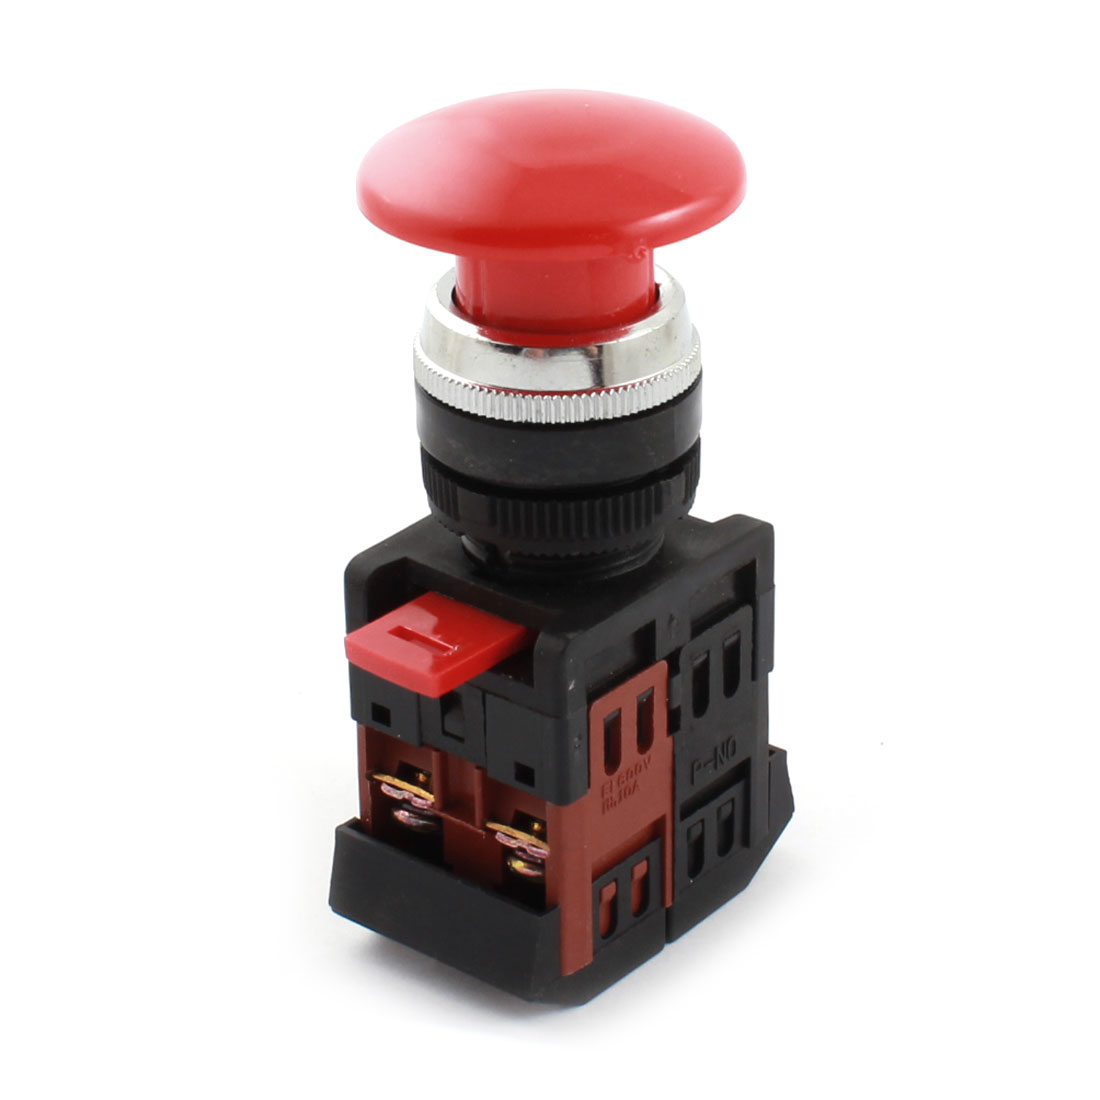 AC 660V 10A 22mm Dia Thread Panel Mount DPST 1NO 1NC Momentary Red Cap Mushroom Push Button Switch